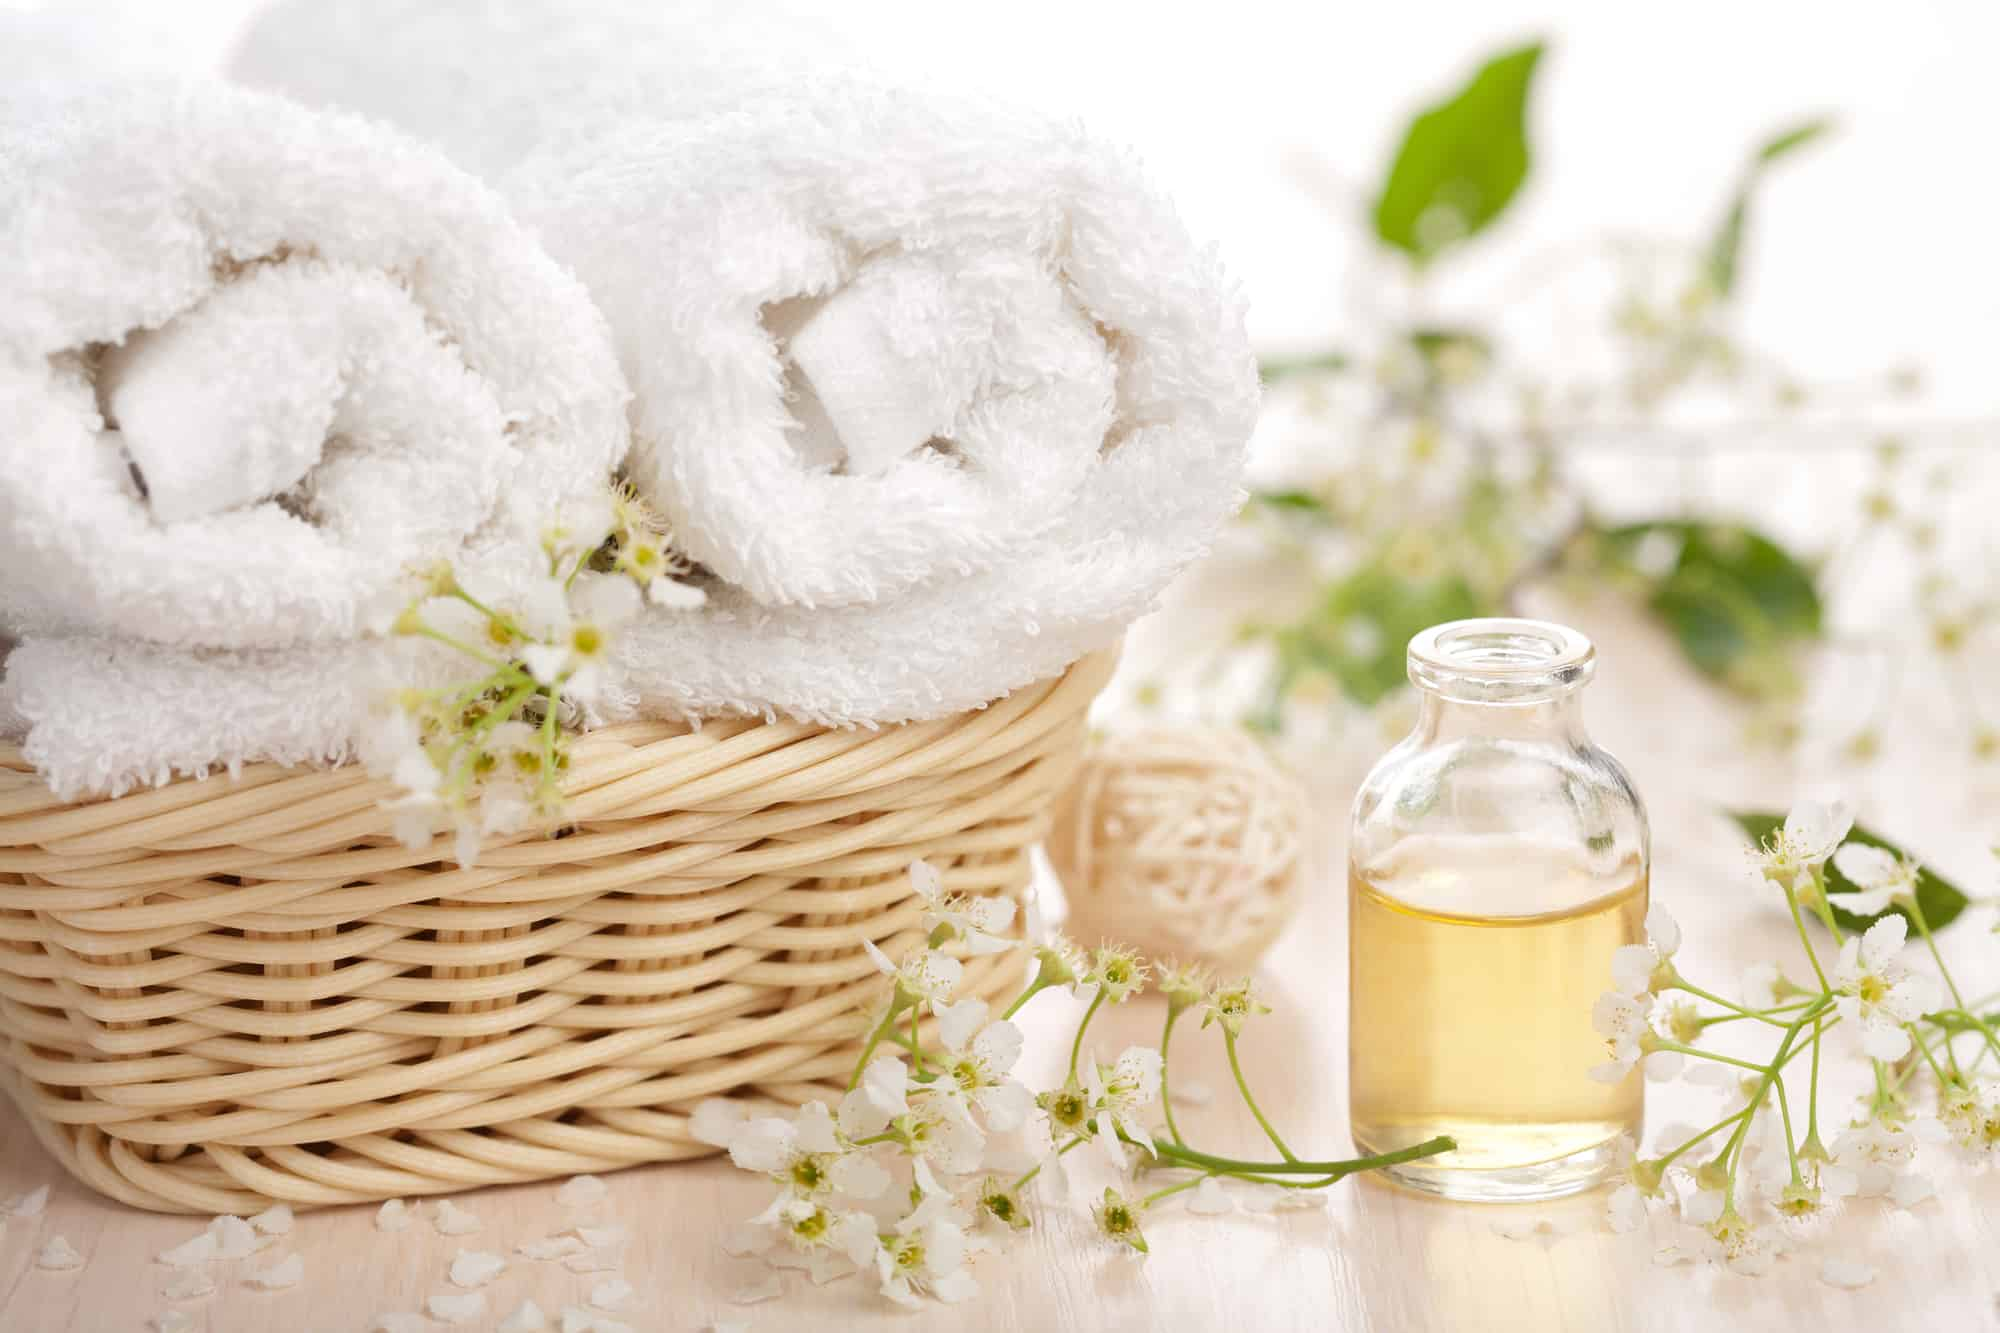 essential oils and towels for the shower